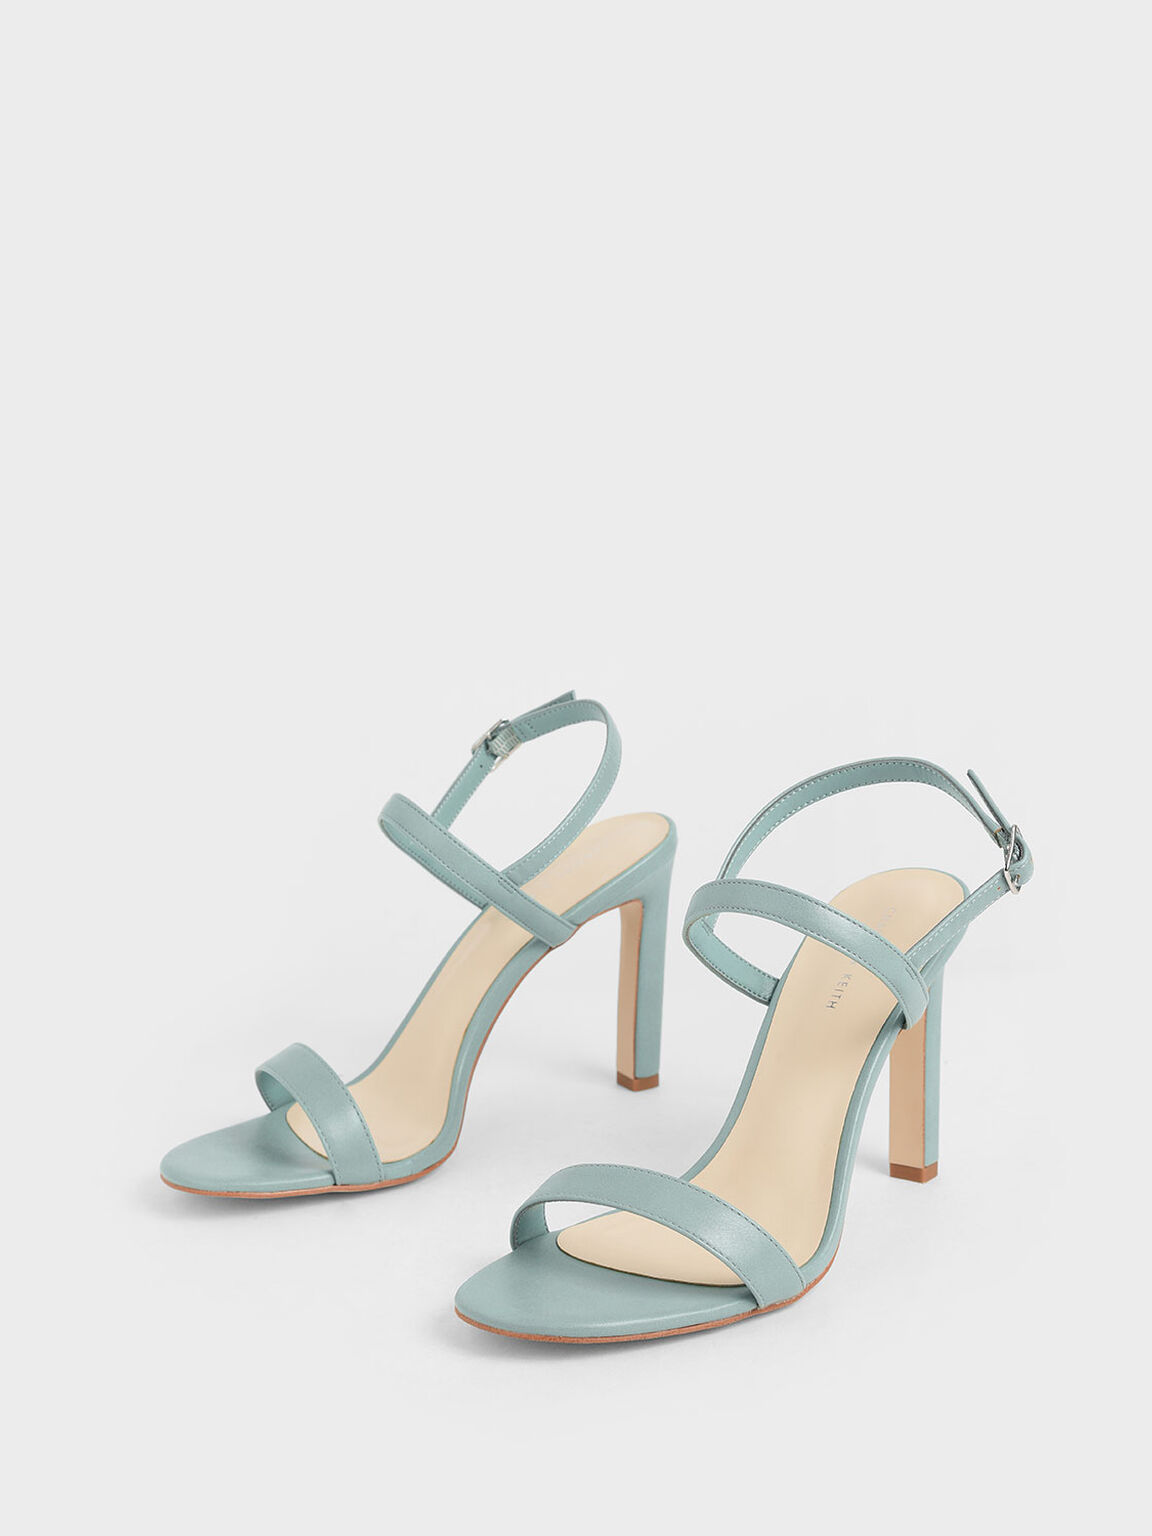 Slingback Stiletto Heel Sandals, Green, hi-res